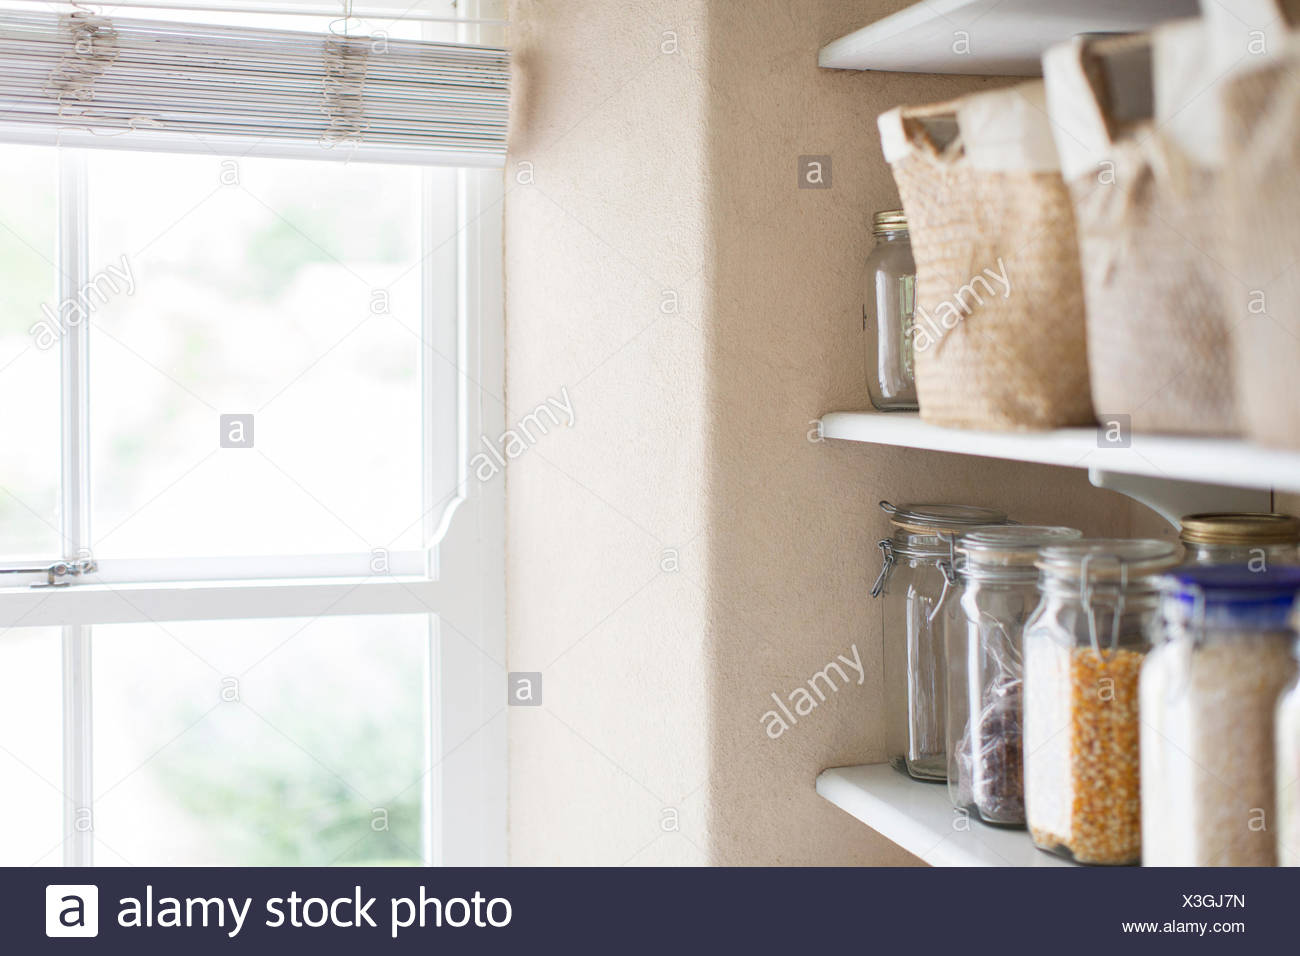 Dry goods and window of pantry - Stock Image